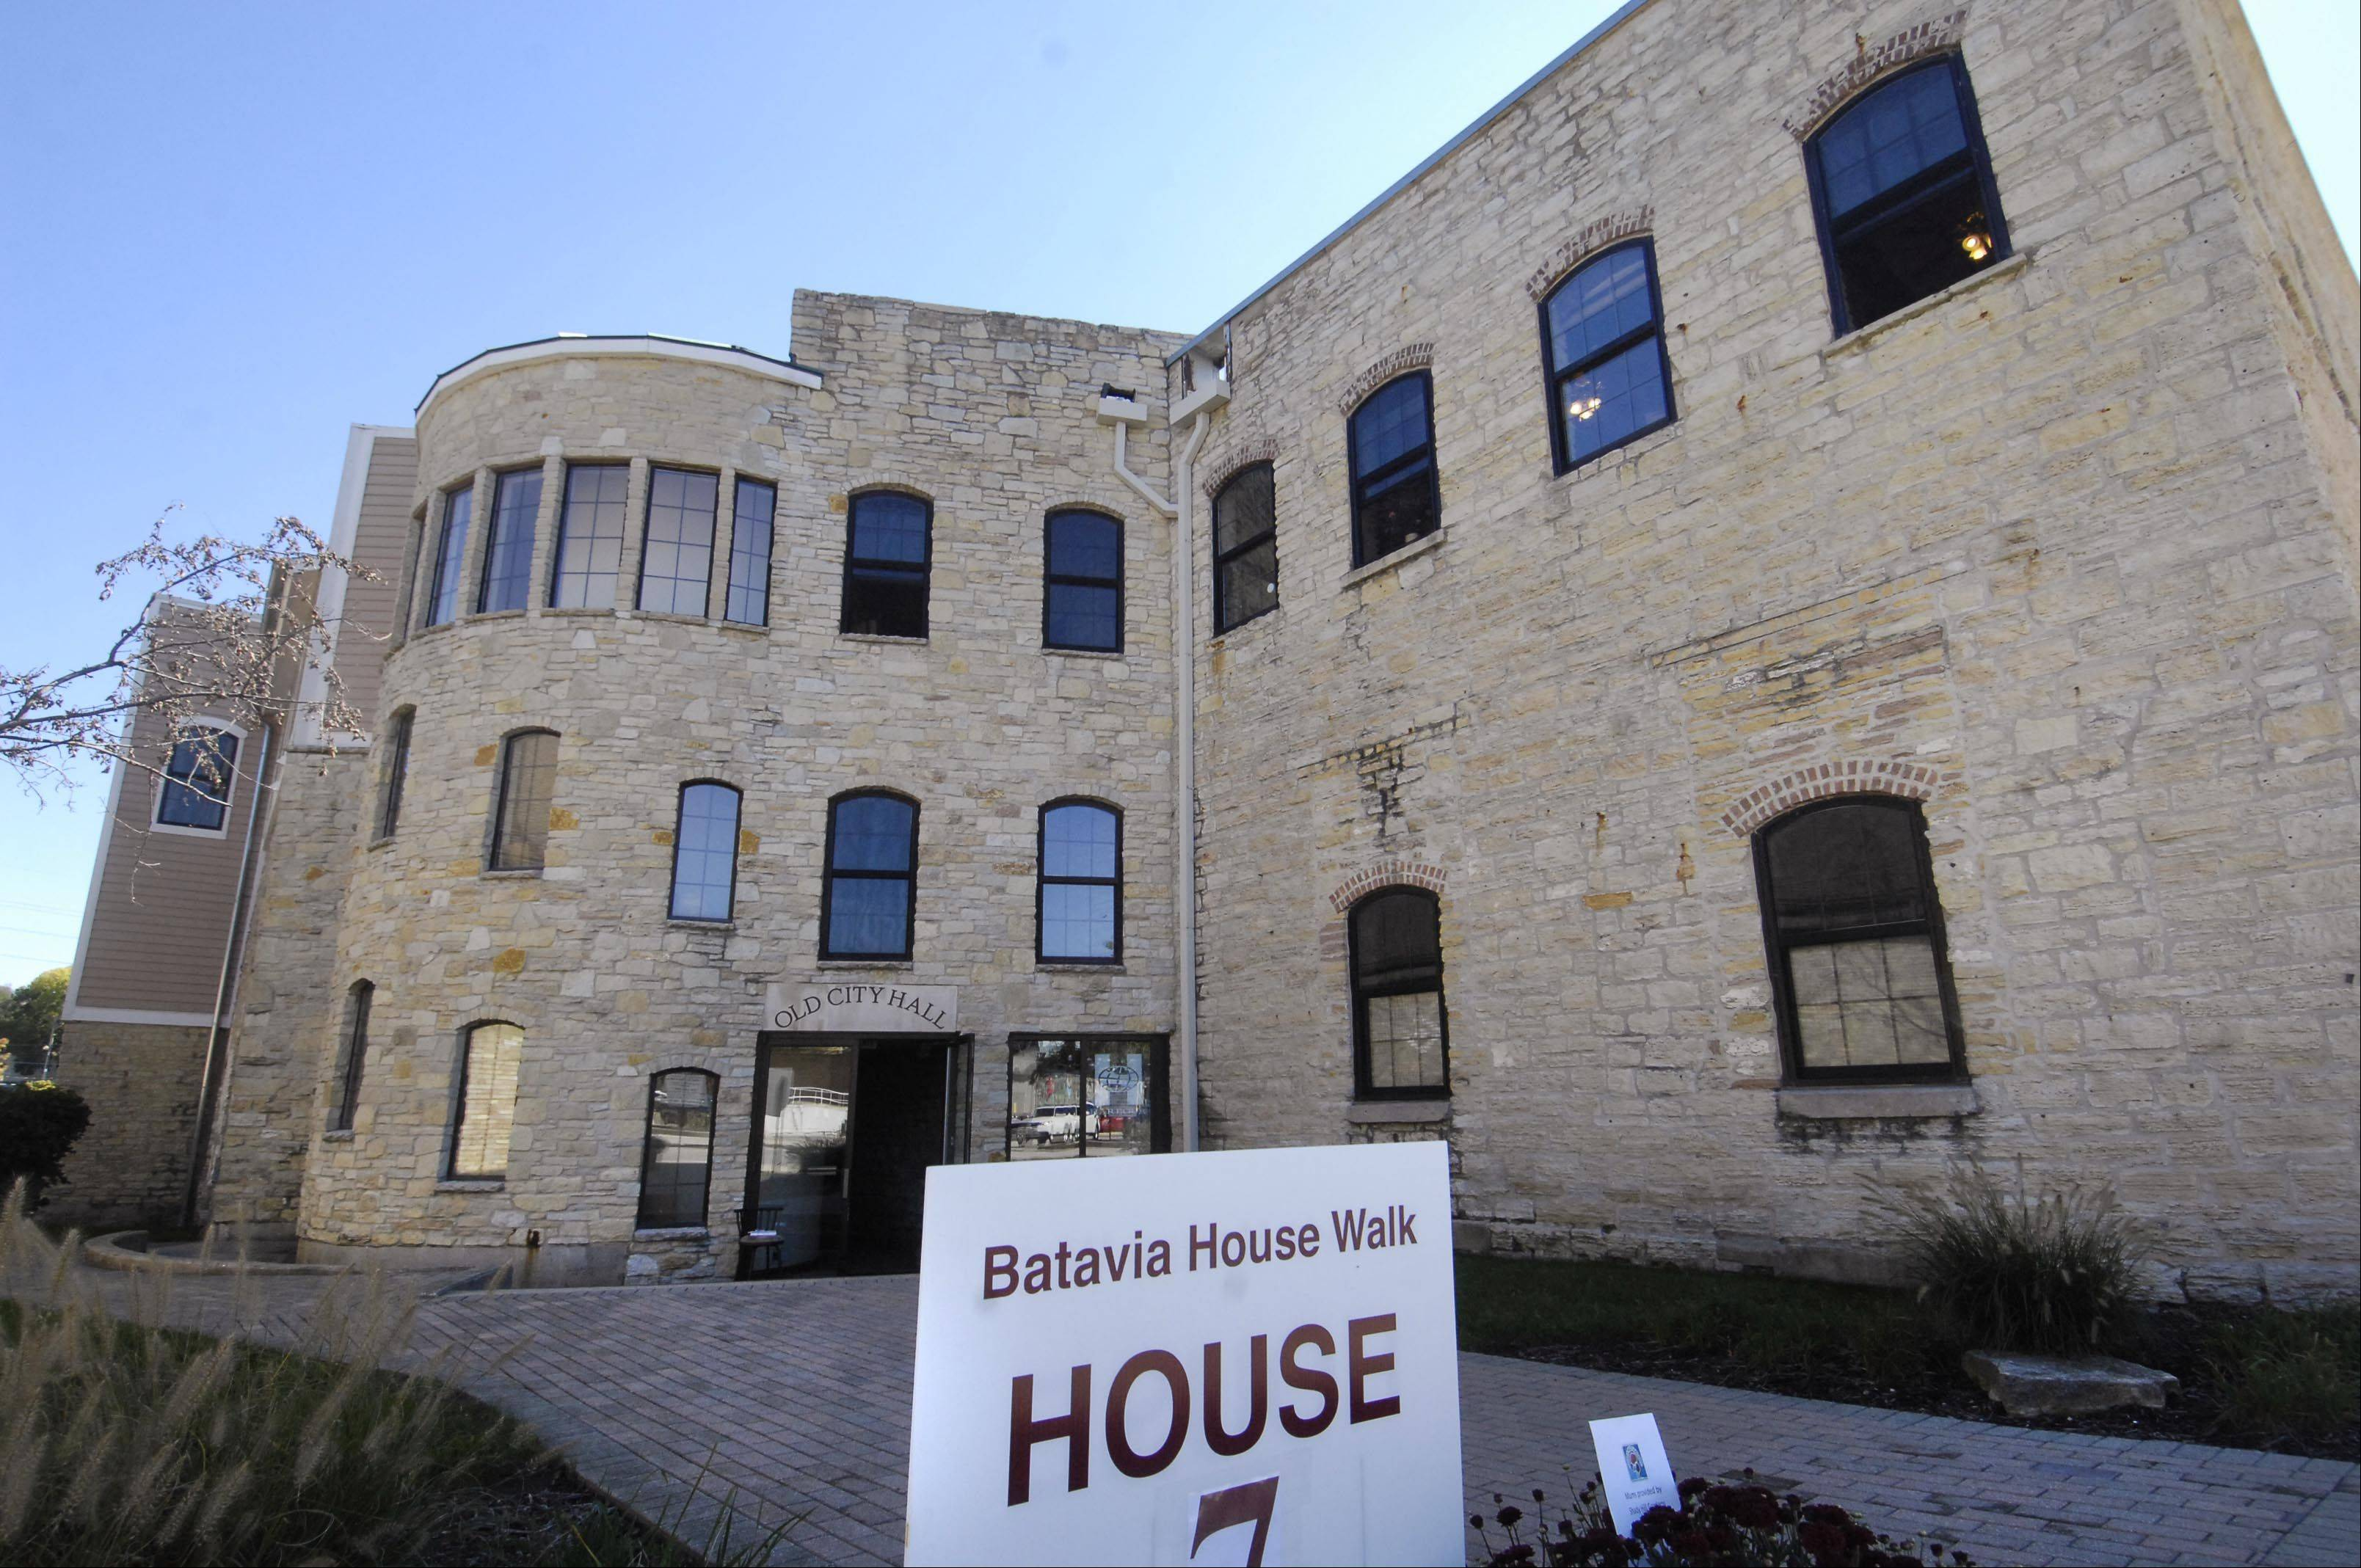 The original Batavia city hall and firehouse, now an office building, was the seventh stop Sunday during the Batavia Main Street House Walk. Tours were conducted through several historical homes and buildings to benefit the Batavia MainStreet program.